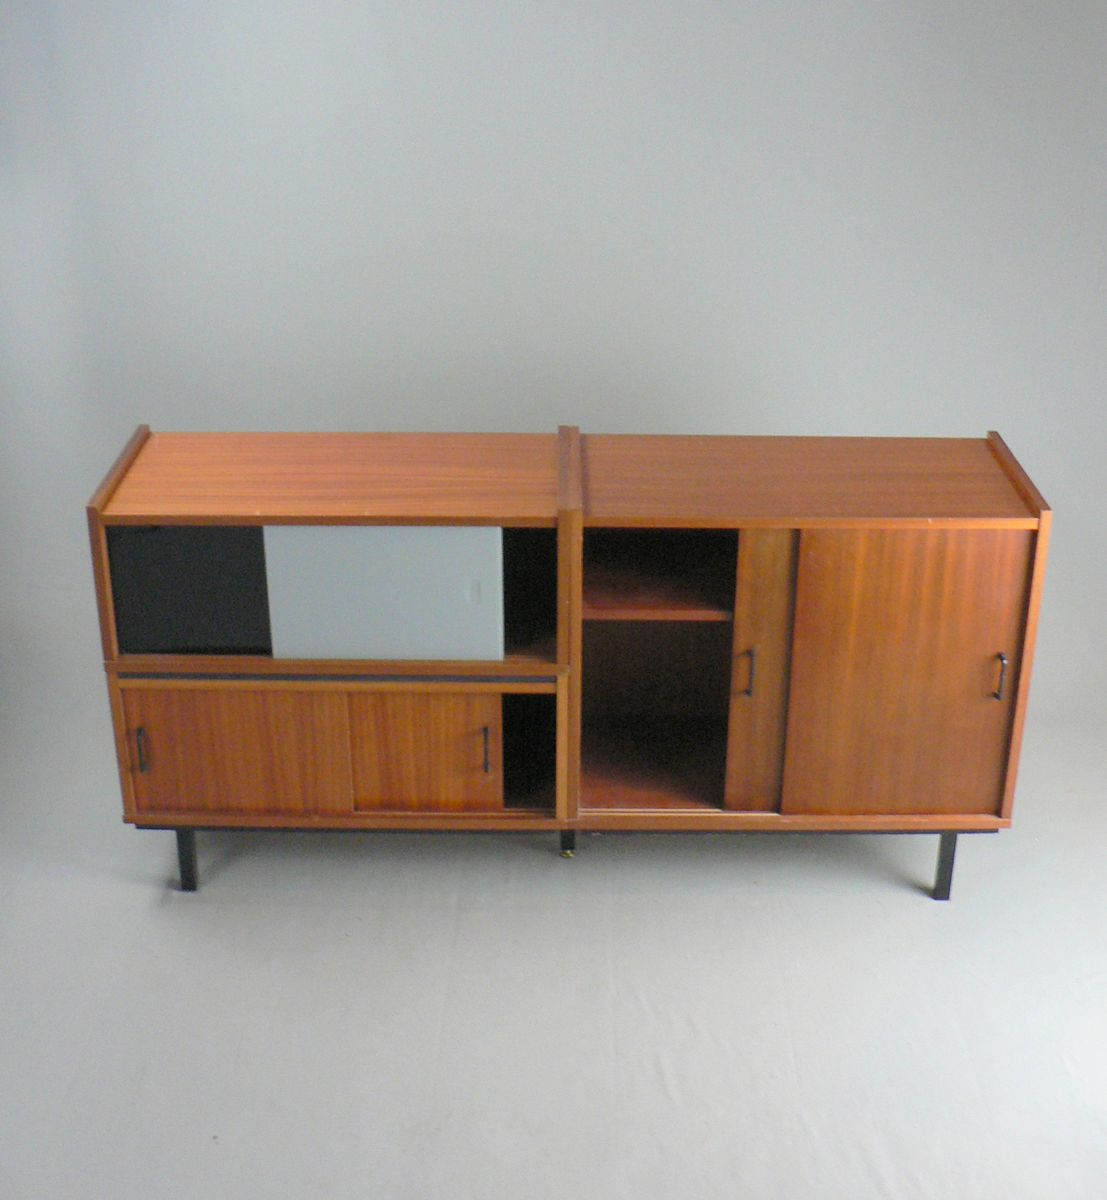 sideboard aus mahagoni furnier glas 1960er bei pamono. Black Bedroom Furniture Sets. Home Design Ideas